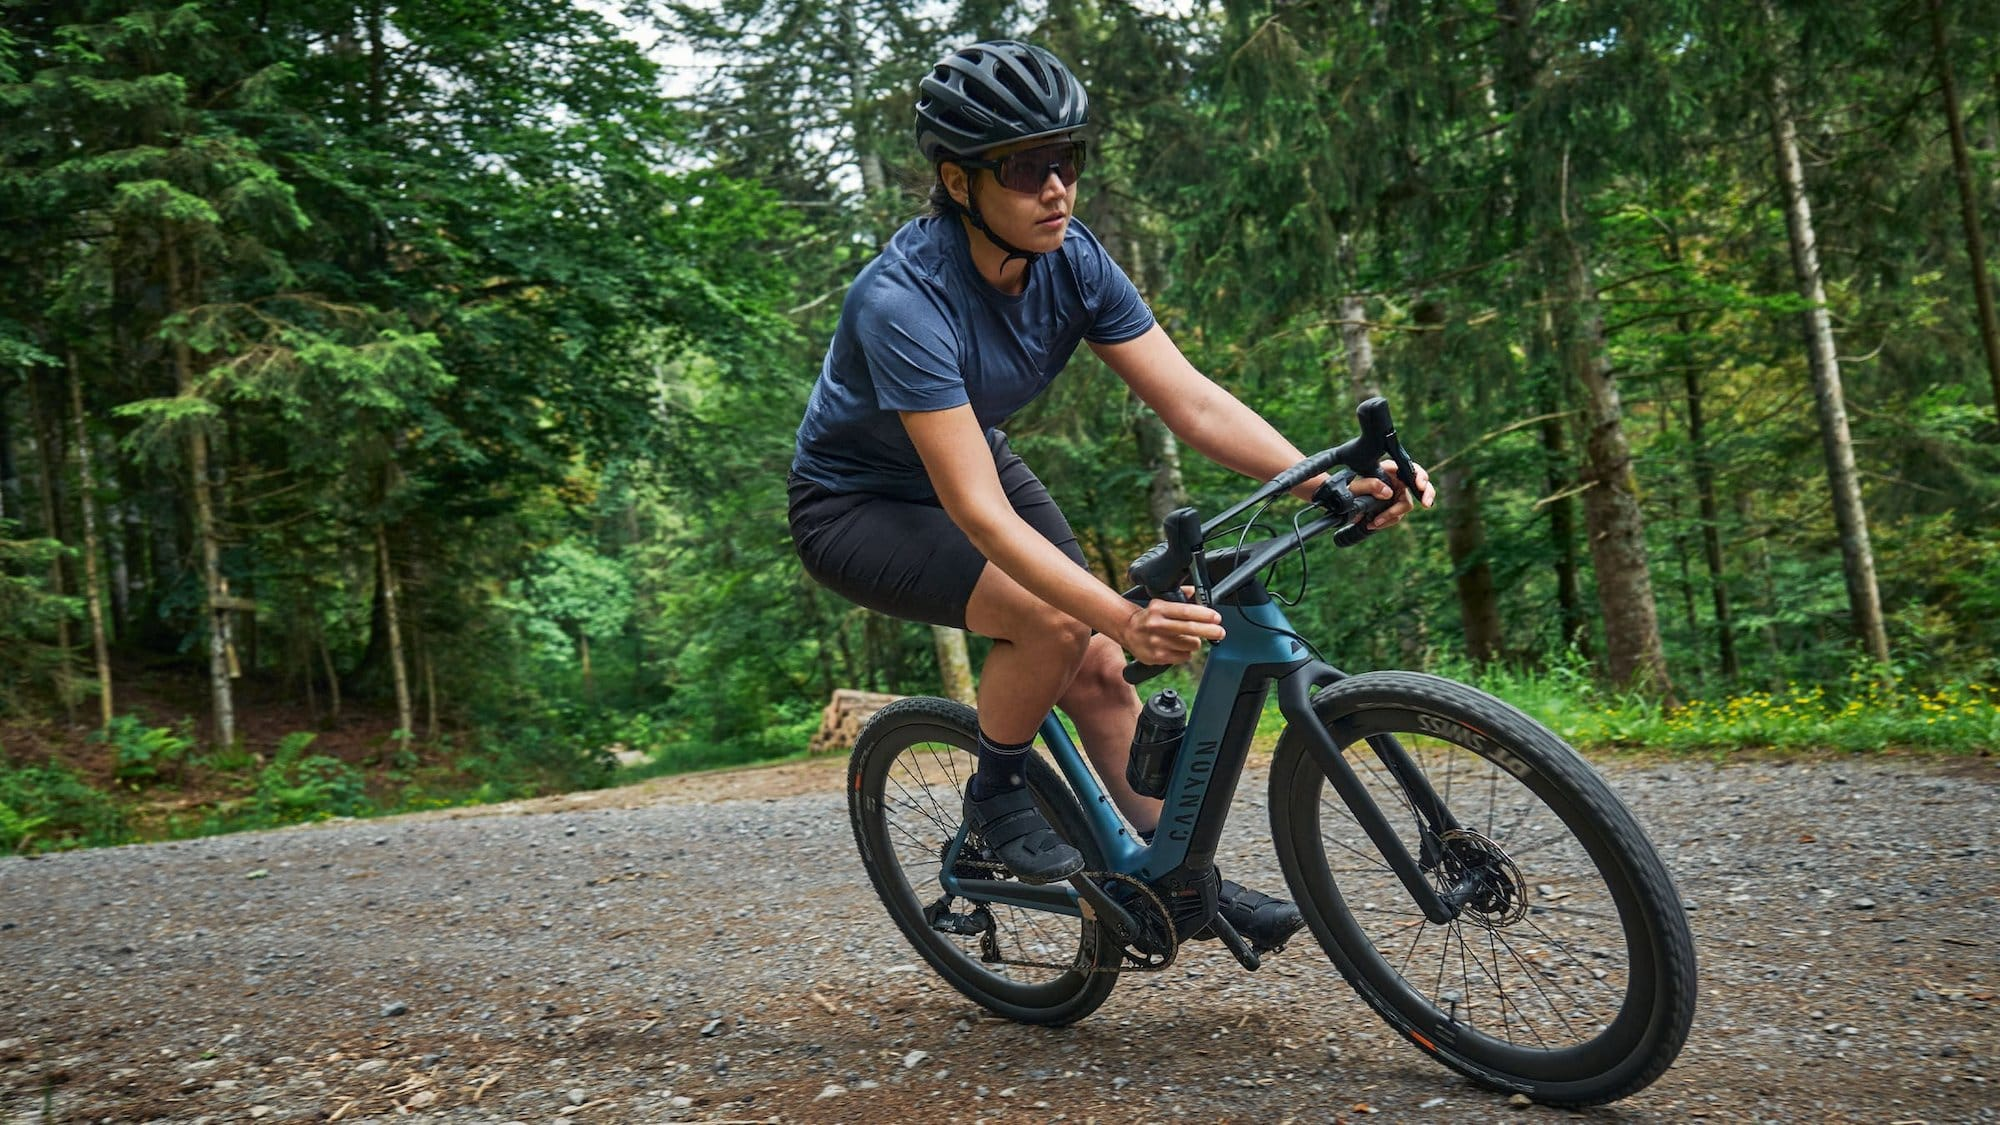 Canyon Grail:ON gravel eBikes give you power for trails, roads, and everything else